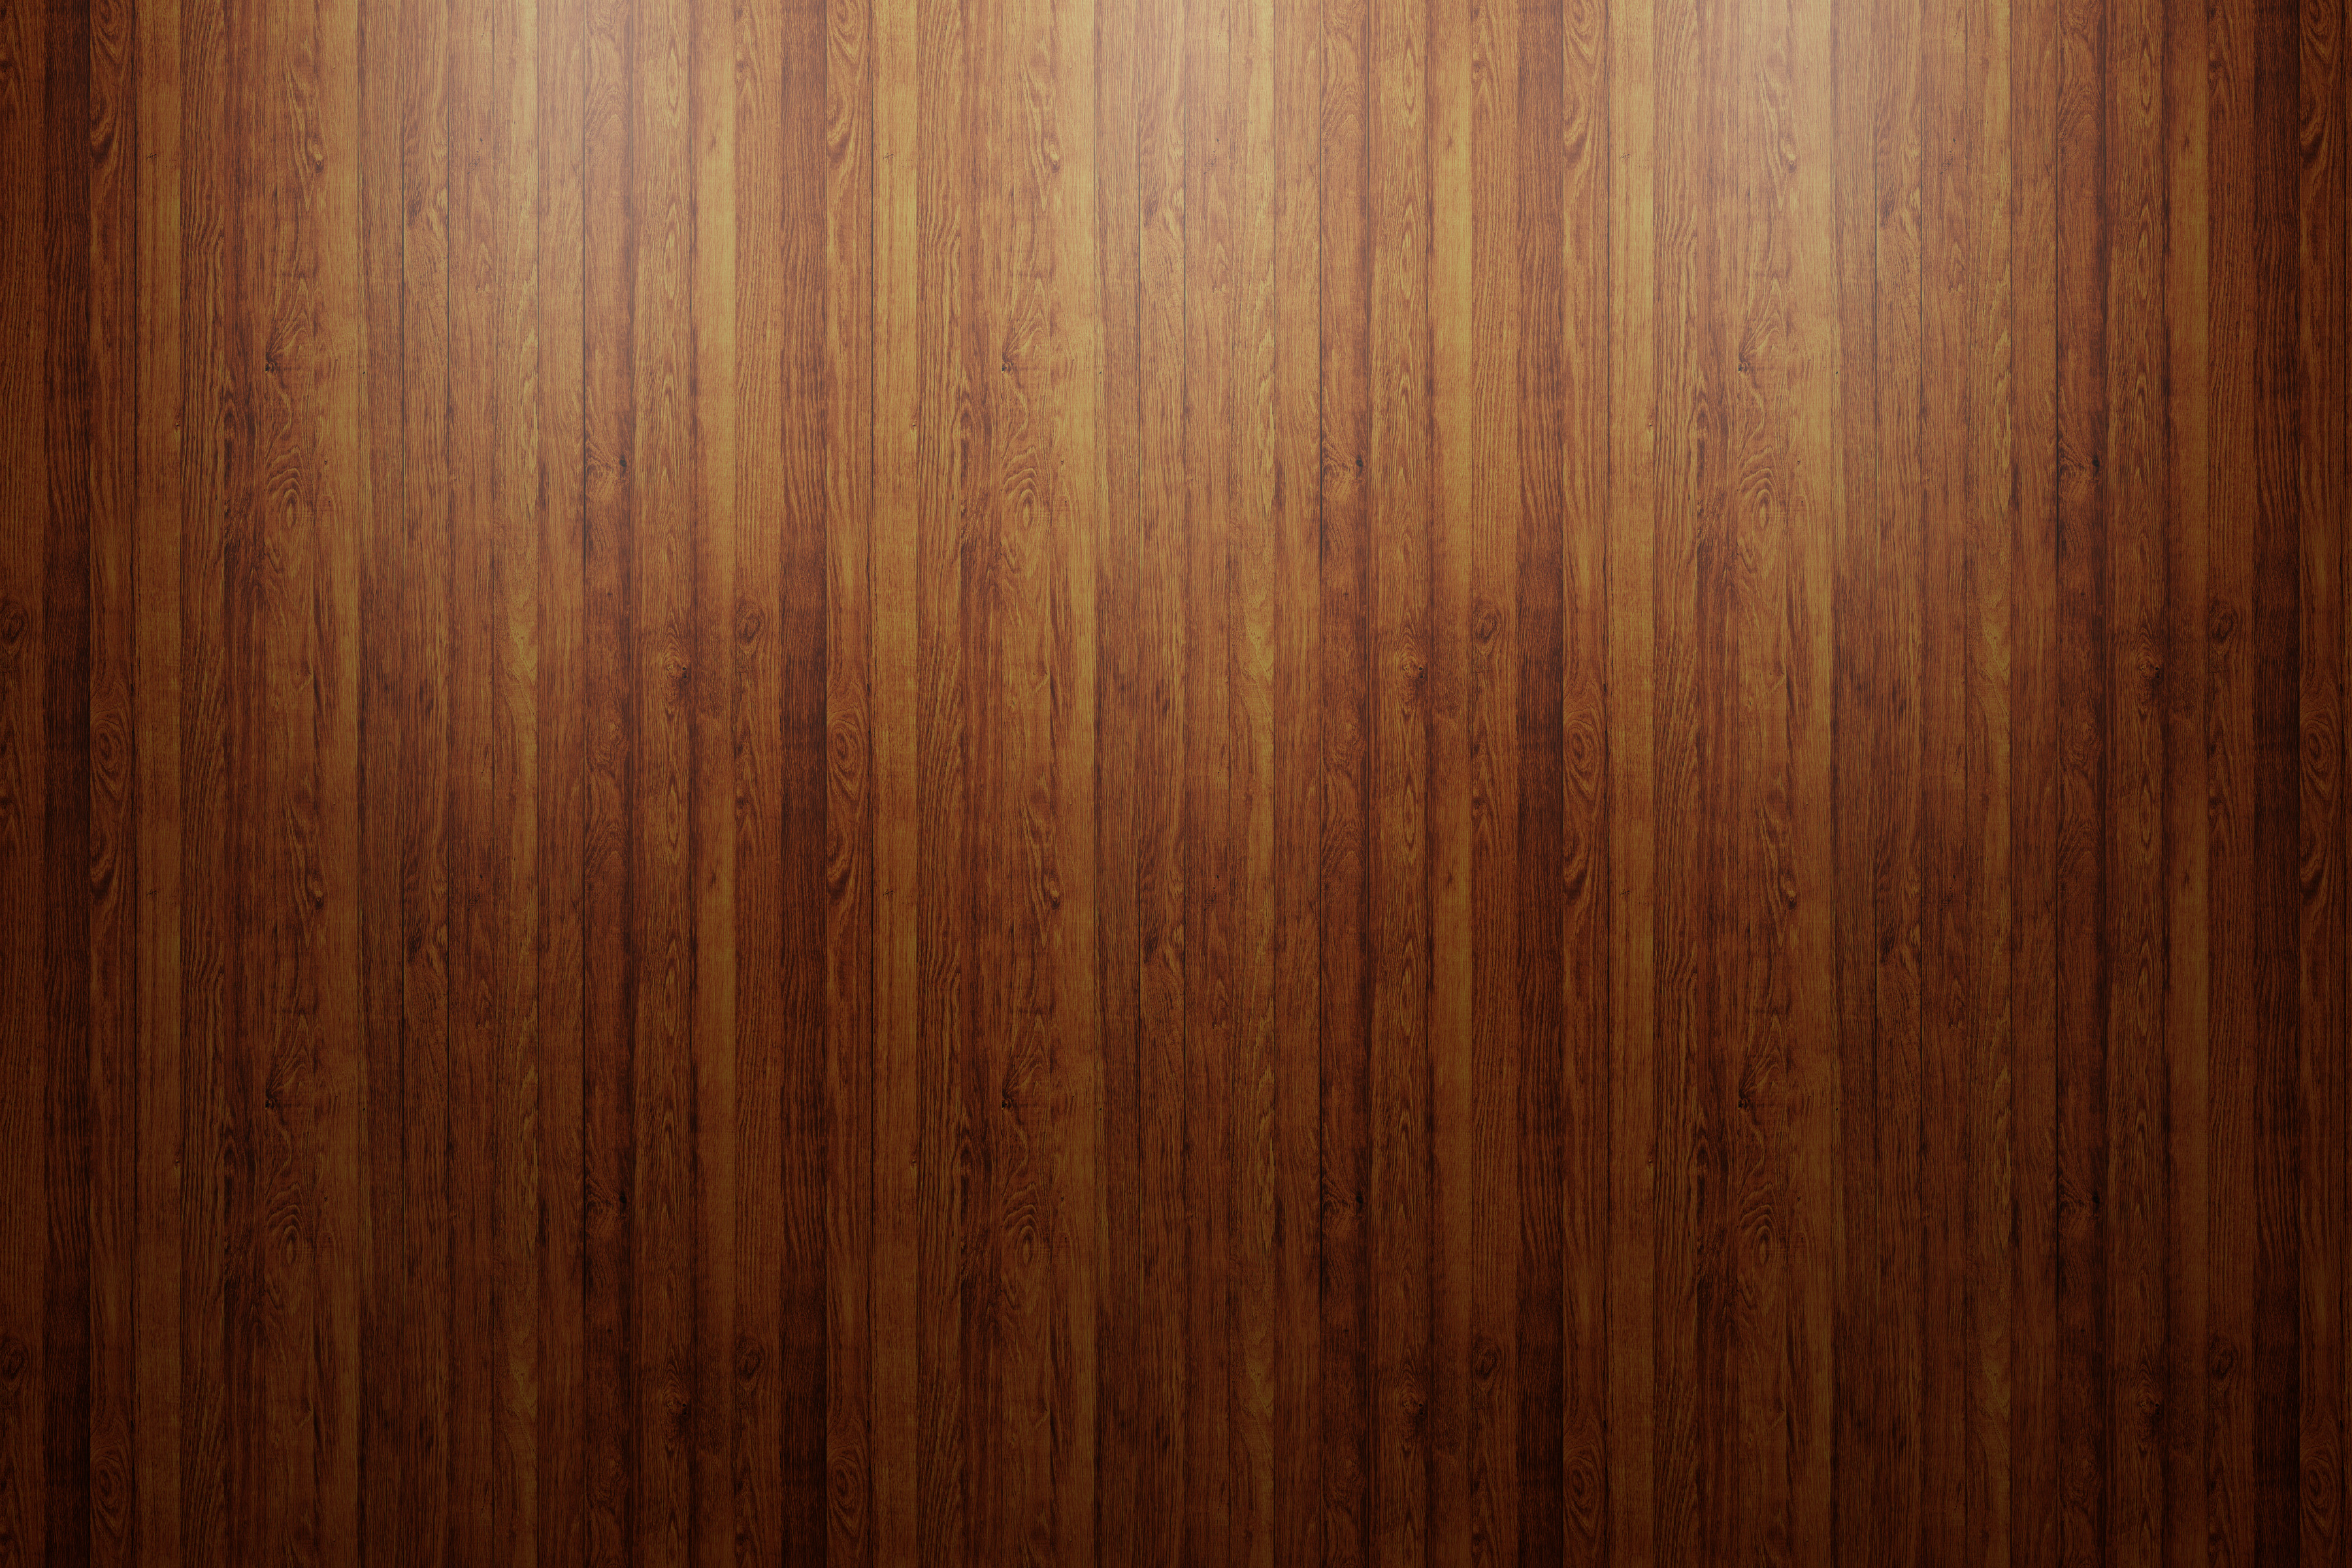 Wooden Textures for Designers (7)